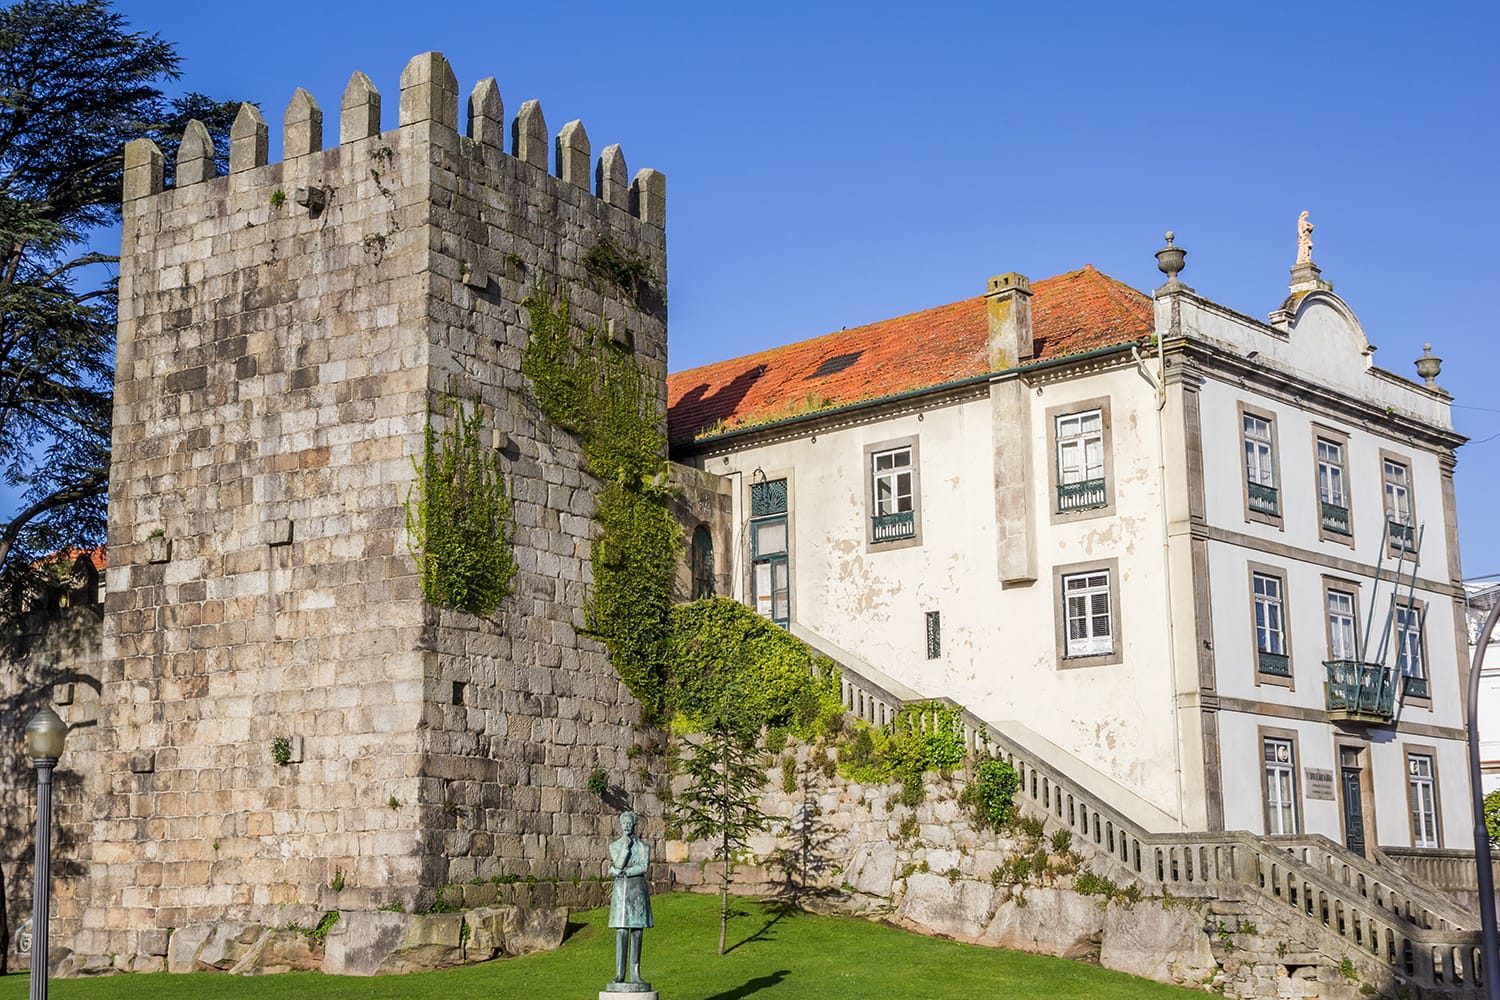 astle Maralha Fernandina in the historical center of Porto, Portugal